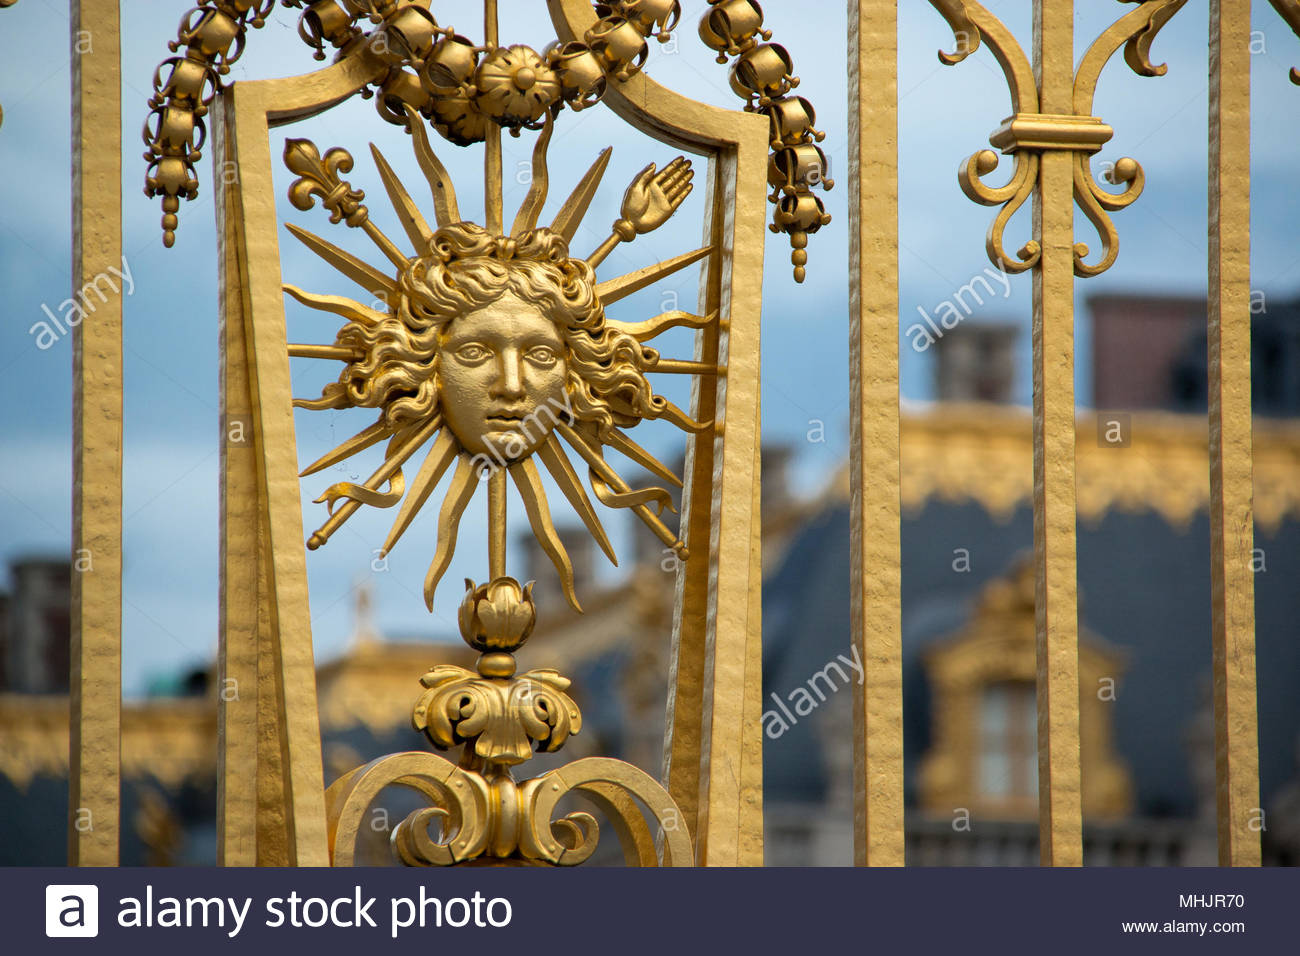 Symbol Of Louis Xiv The Sun King On The Gate Of The Courtyard Of